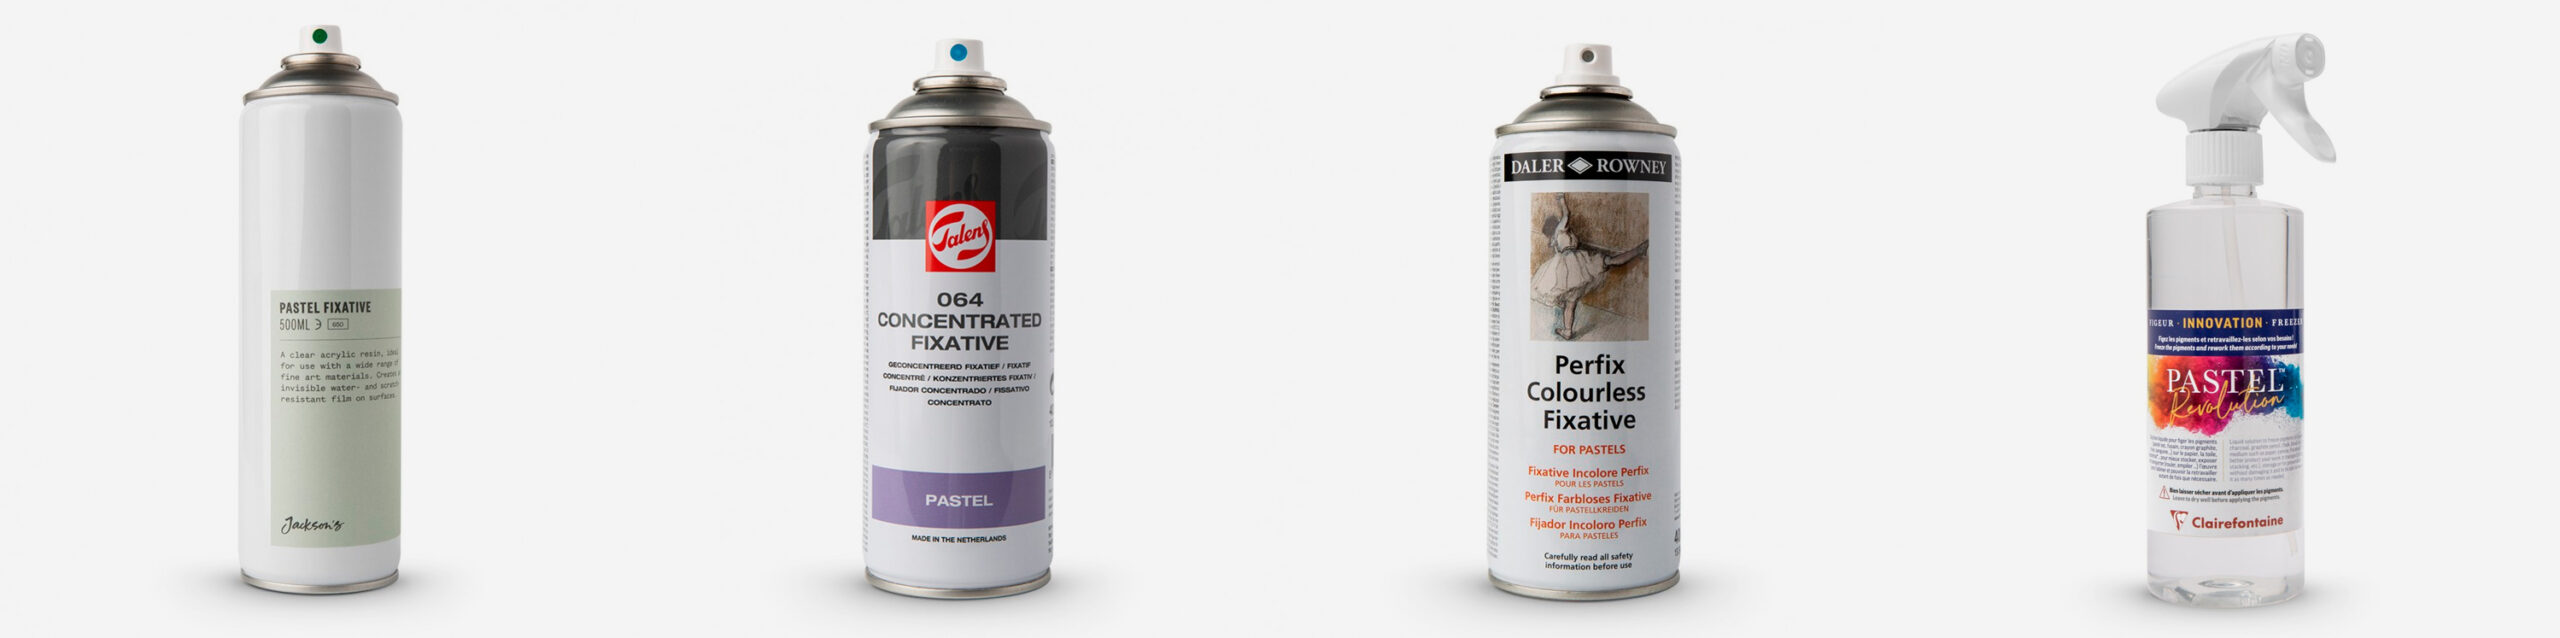 L-R: Jackson's Pastel Fixative 500ml, Royal Talens Concentrated Fixative 400ml, Daler Rowney Perfix Colourless fixative 400ml, Clairefontaine Pastel Revolution Pastel Freezer 500ml